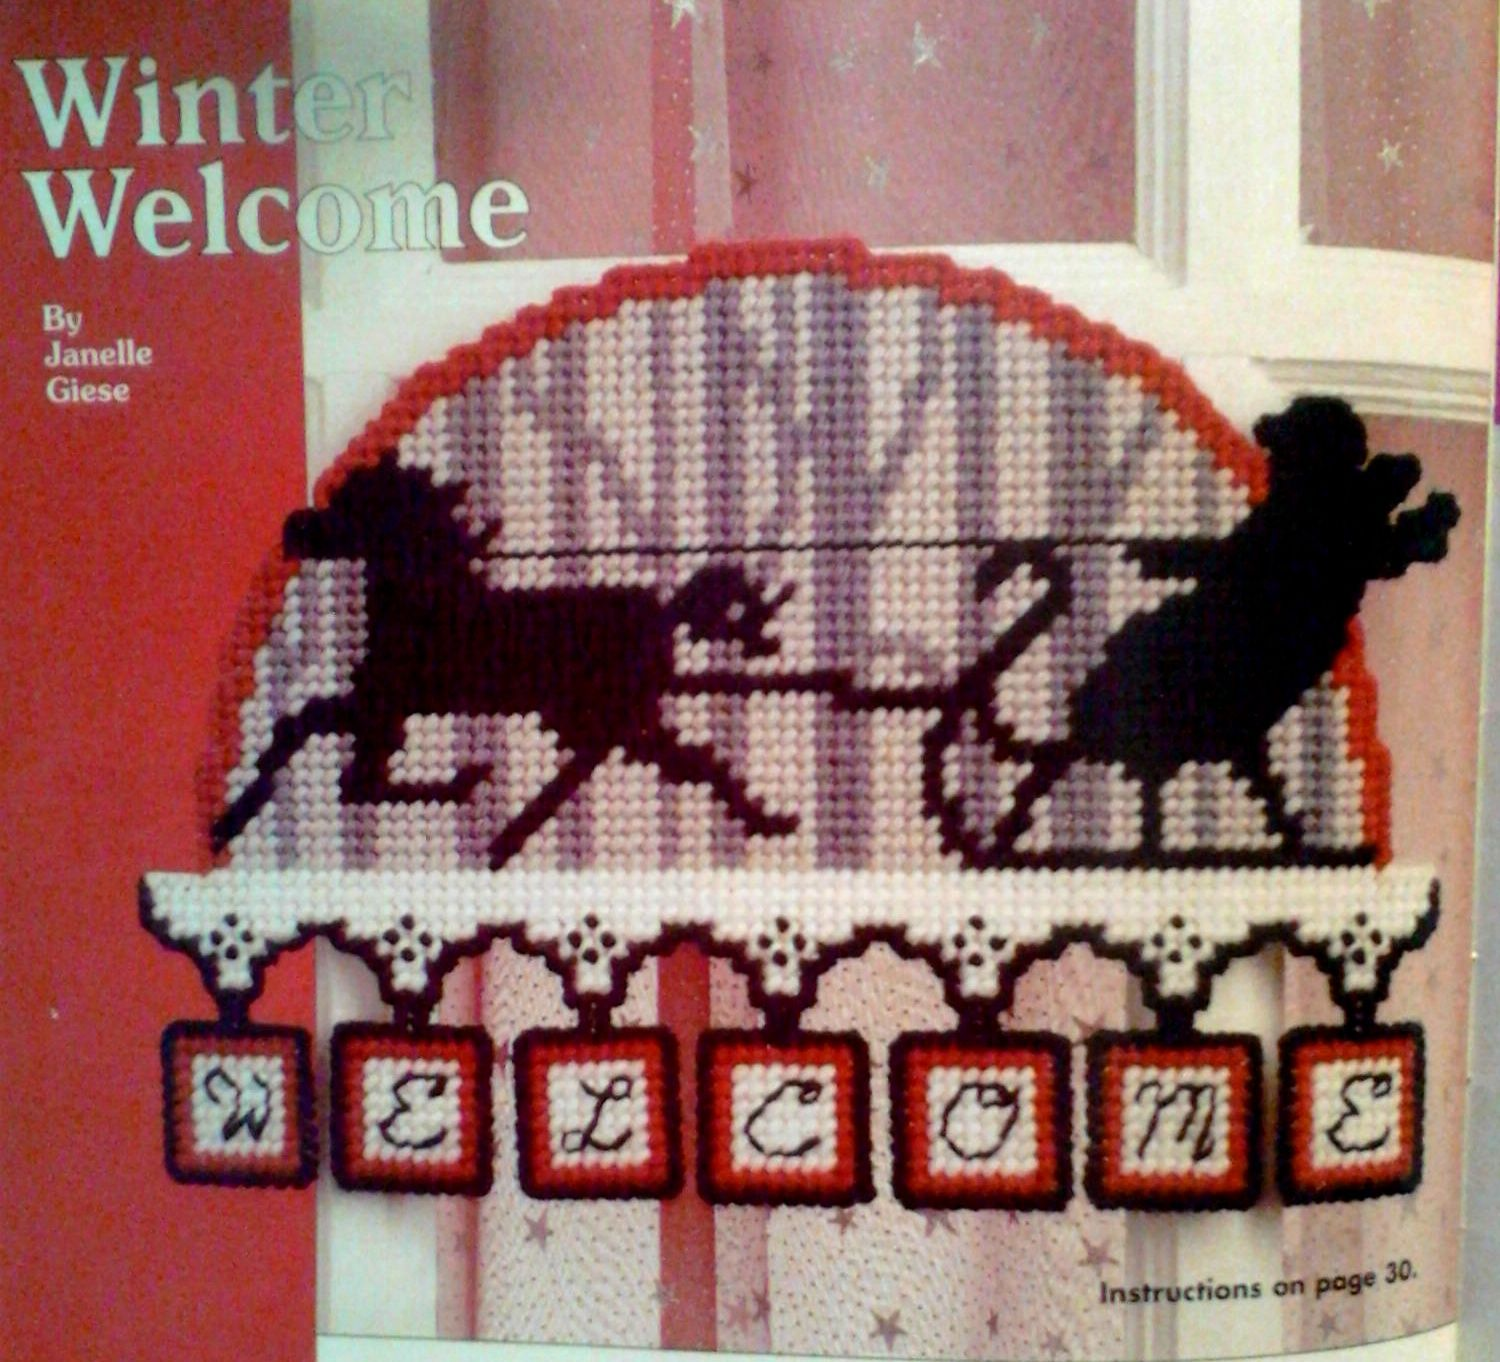 Winter welcome plastic canvas 1-2